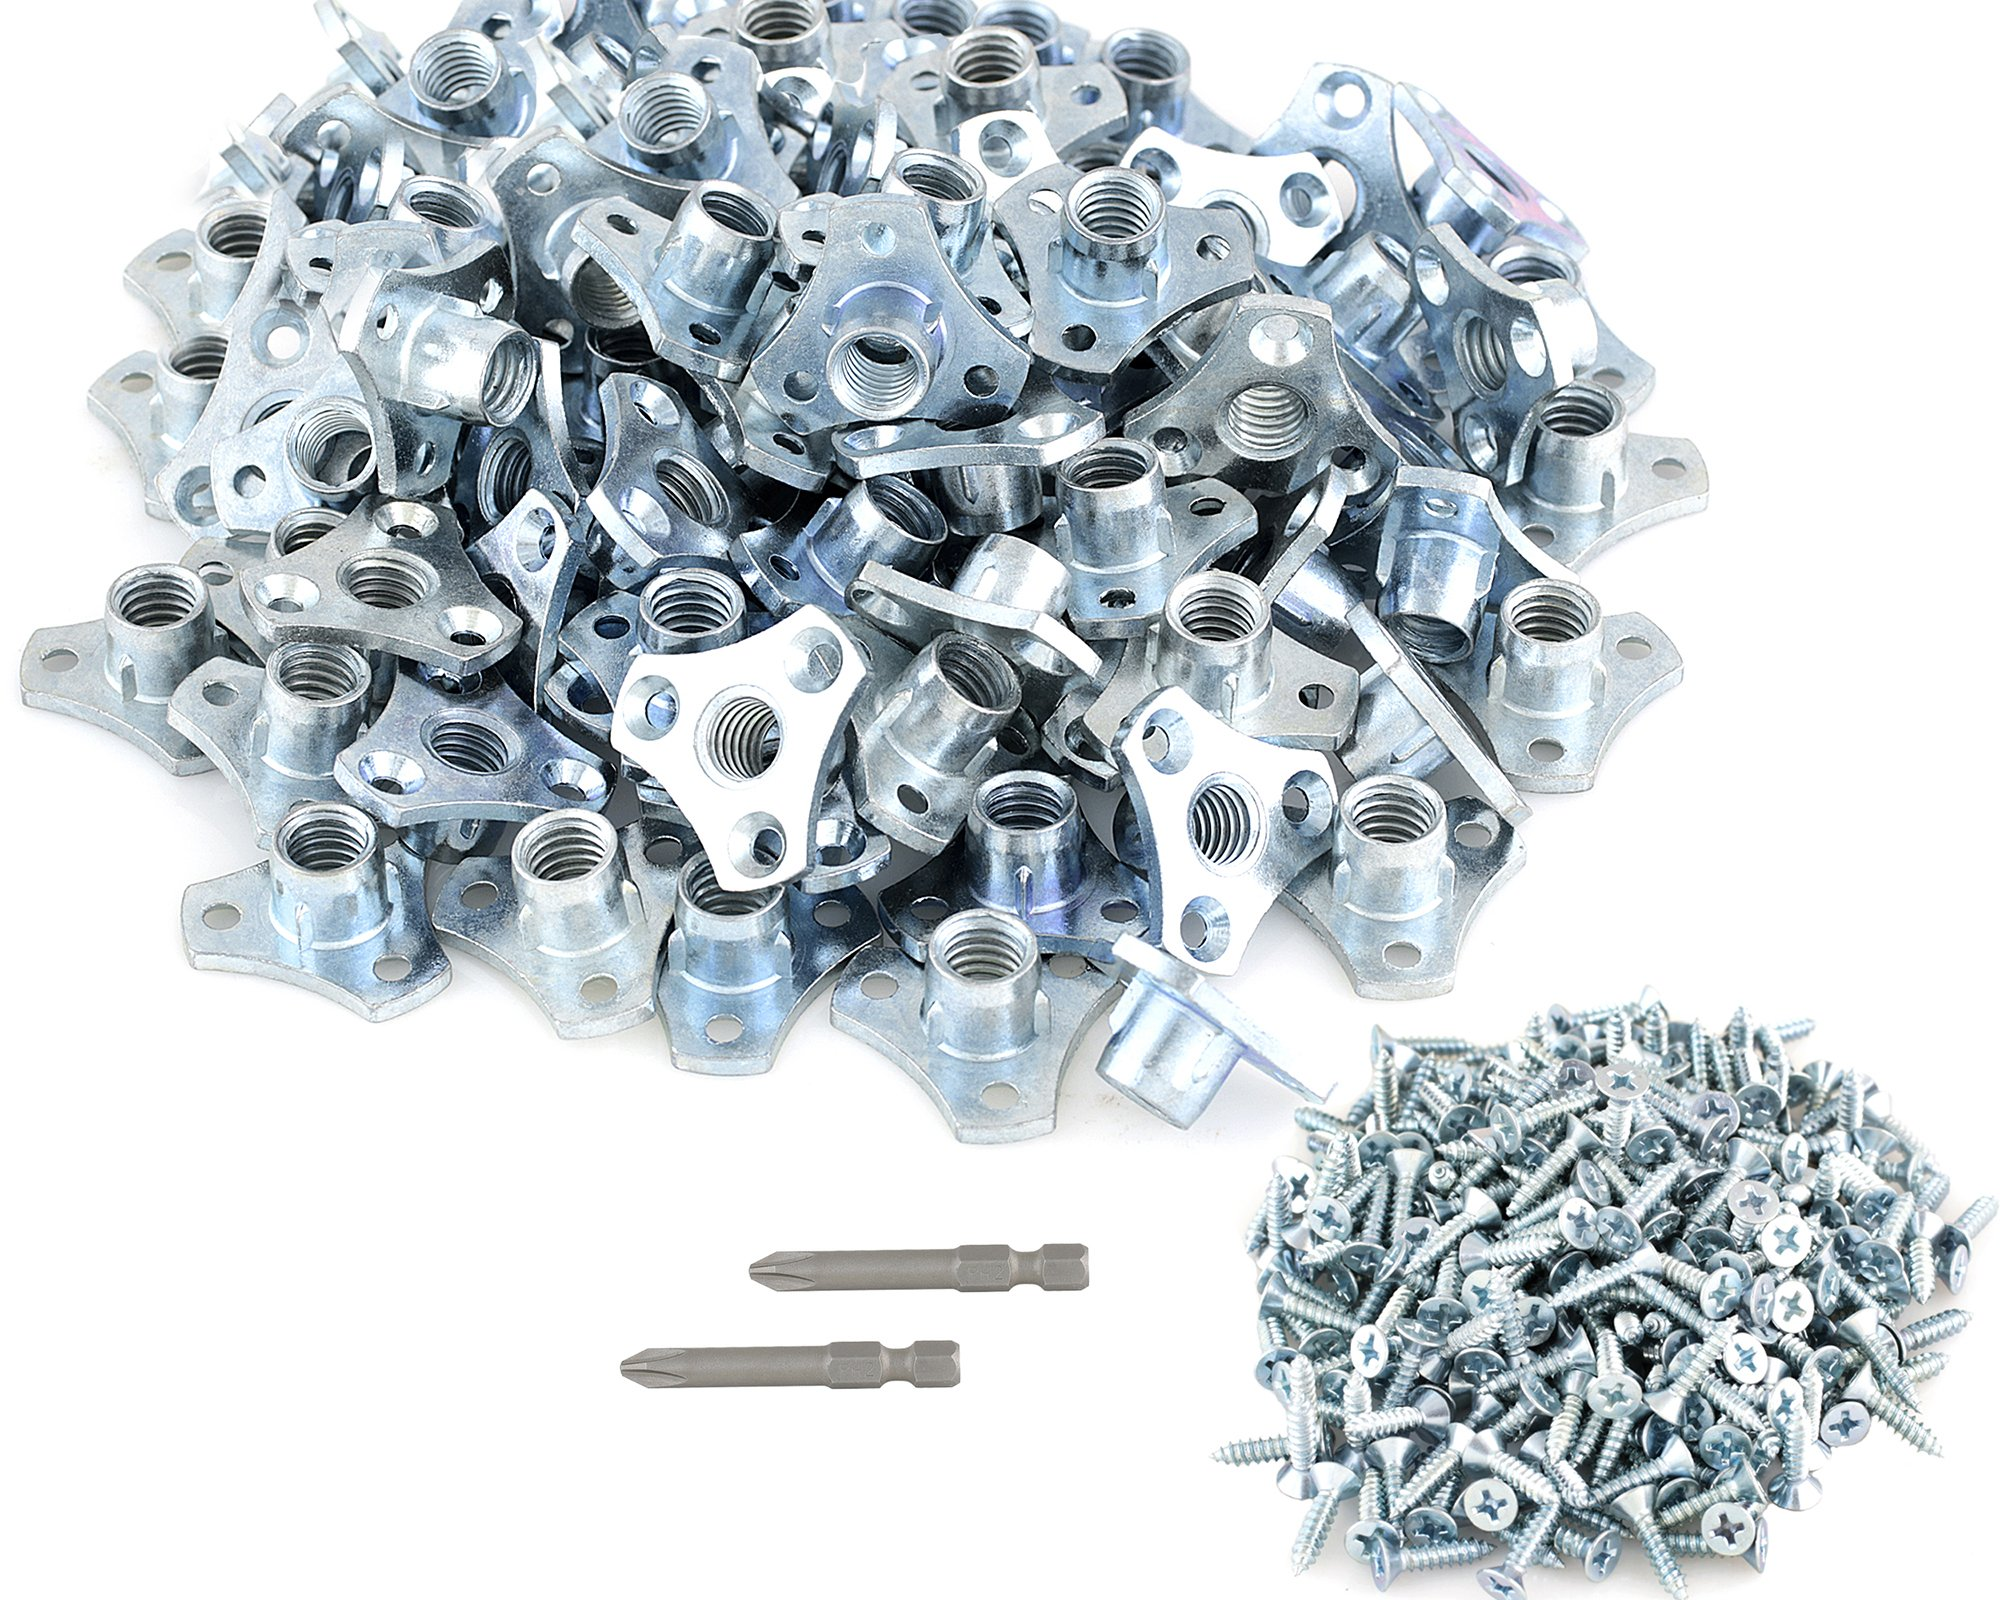 (96-Pack) 3/8-16 Screw-on Tee Nut Kit - T-Nuts Come with Screws and (2) #2 Phillips Power Bit